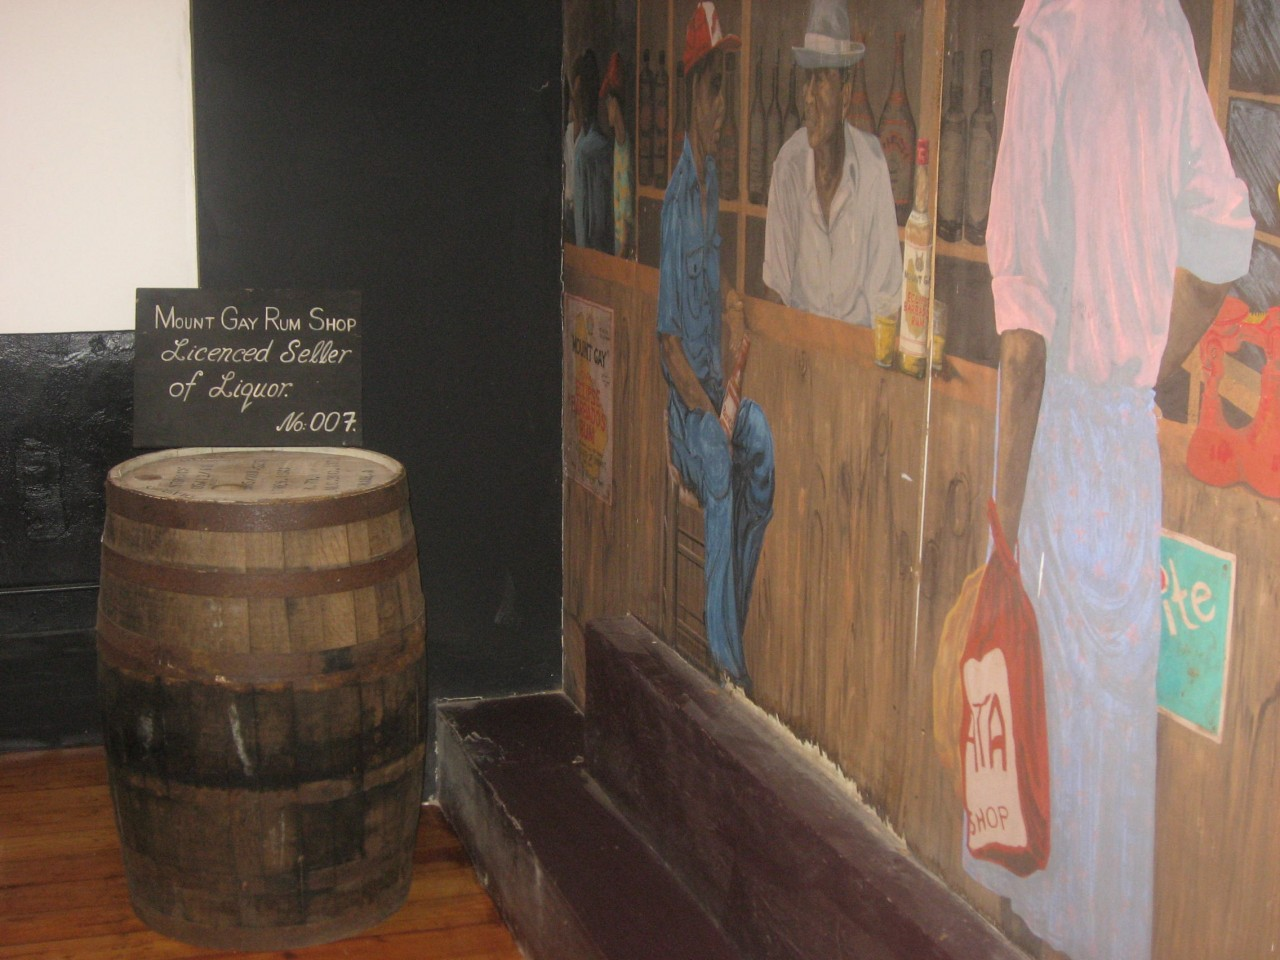 Tour the Mount Gay Rum Factory